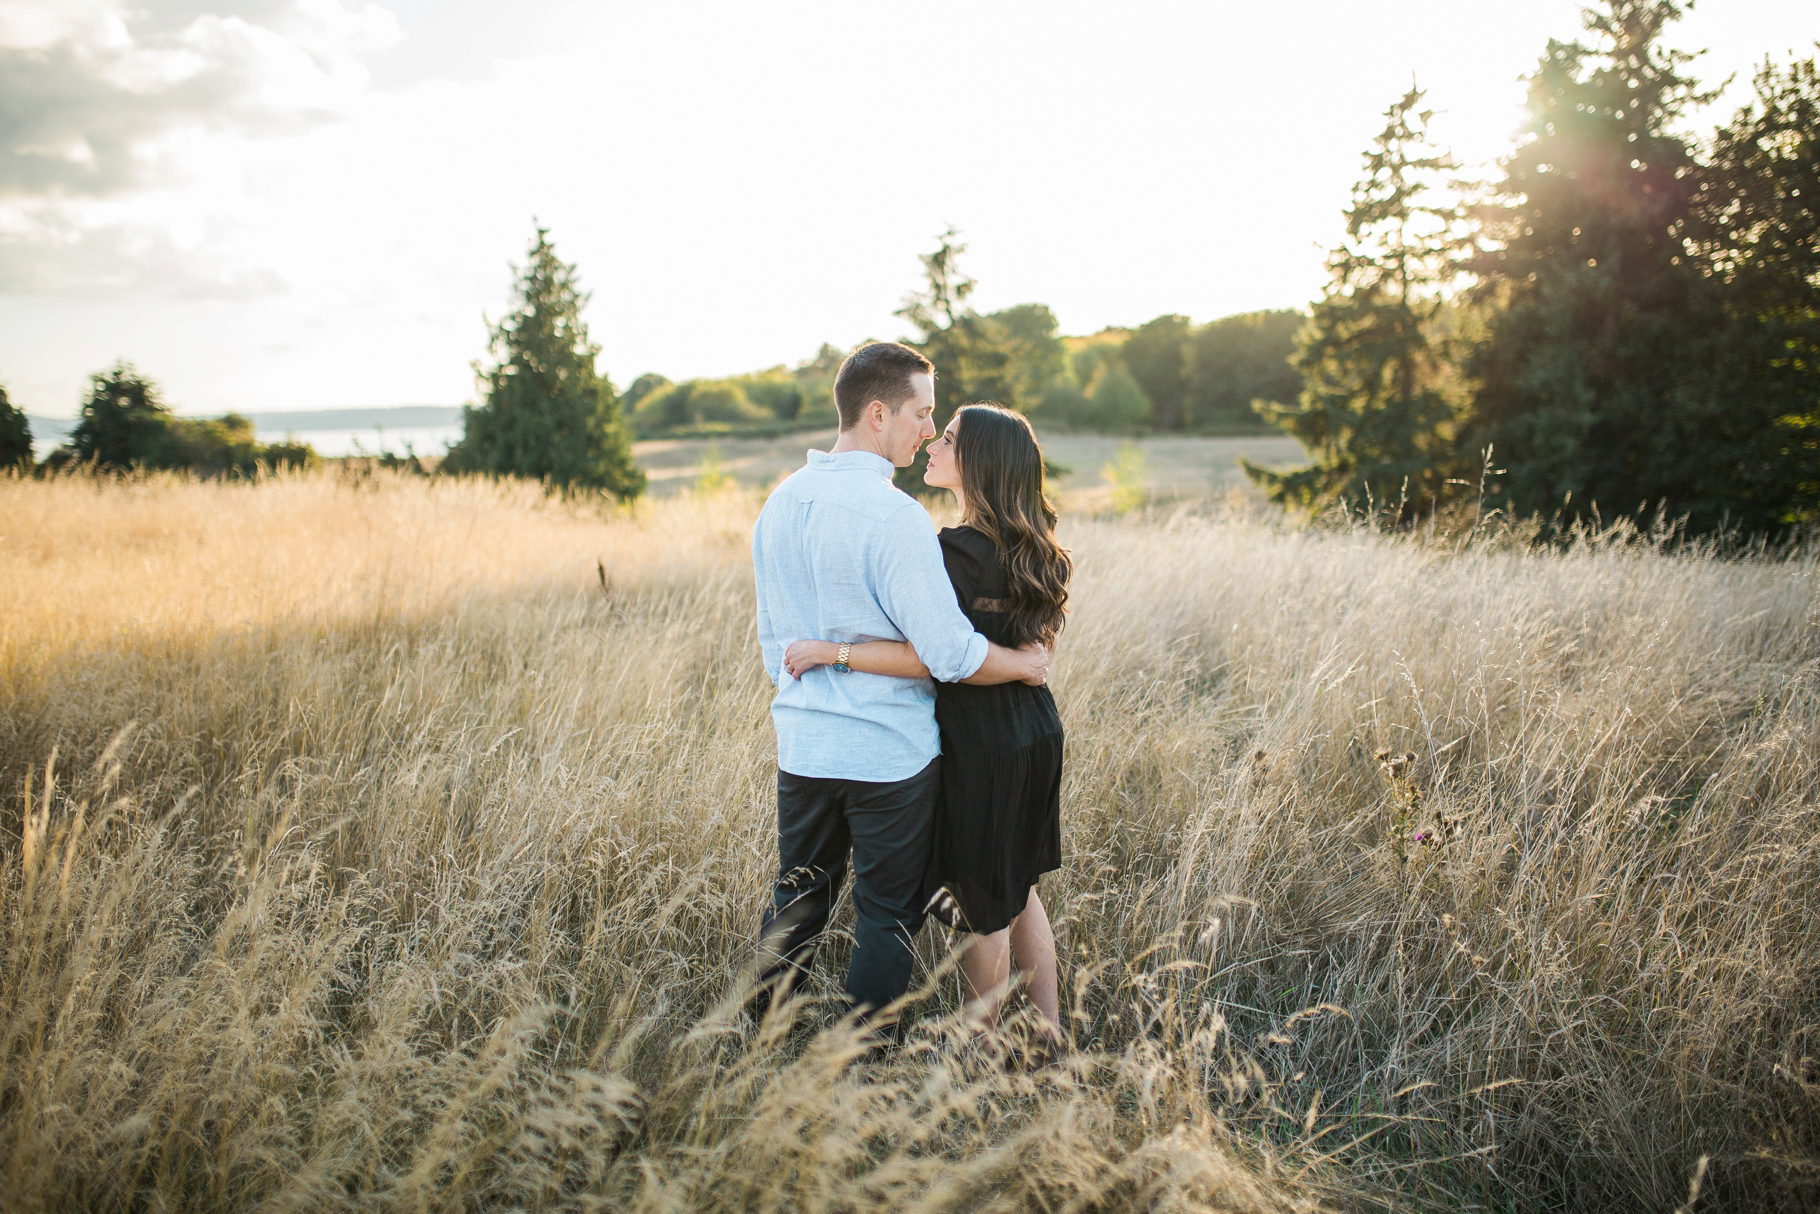 38-Engagement-Portraits-Discovery-Park-Seattle-Wedding-Photographer